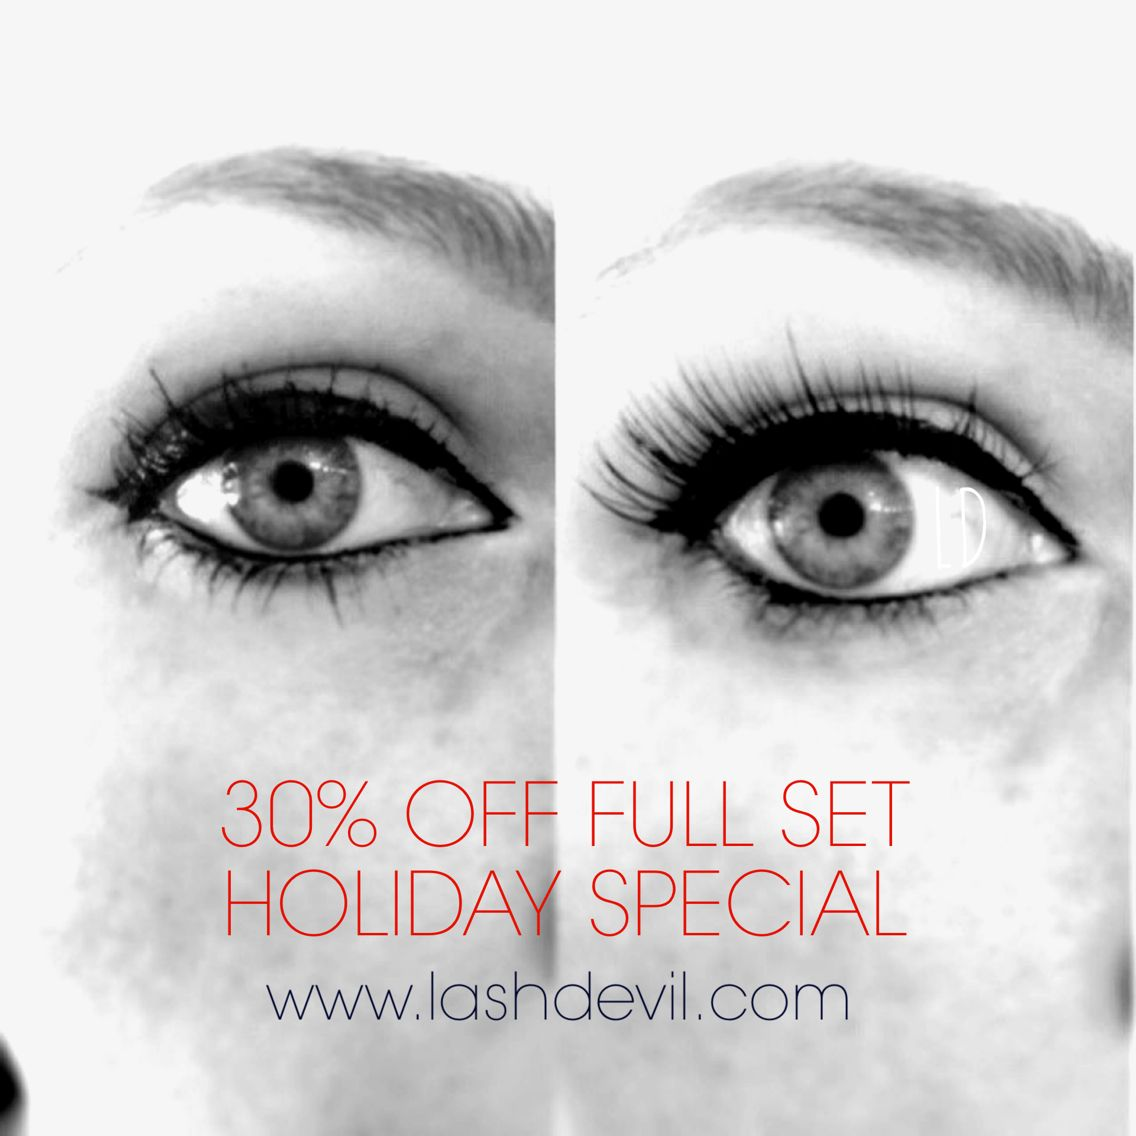 e8a1cfe0704 How about a natural looking instant eye lift with no surgery? Who wouldn't